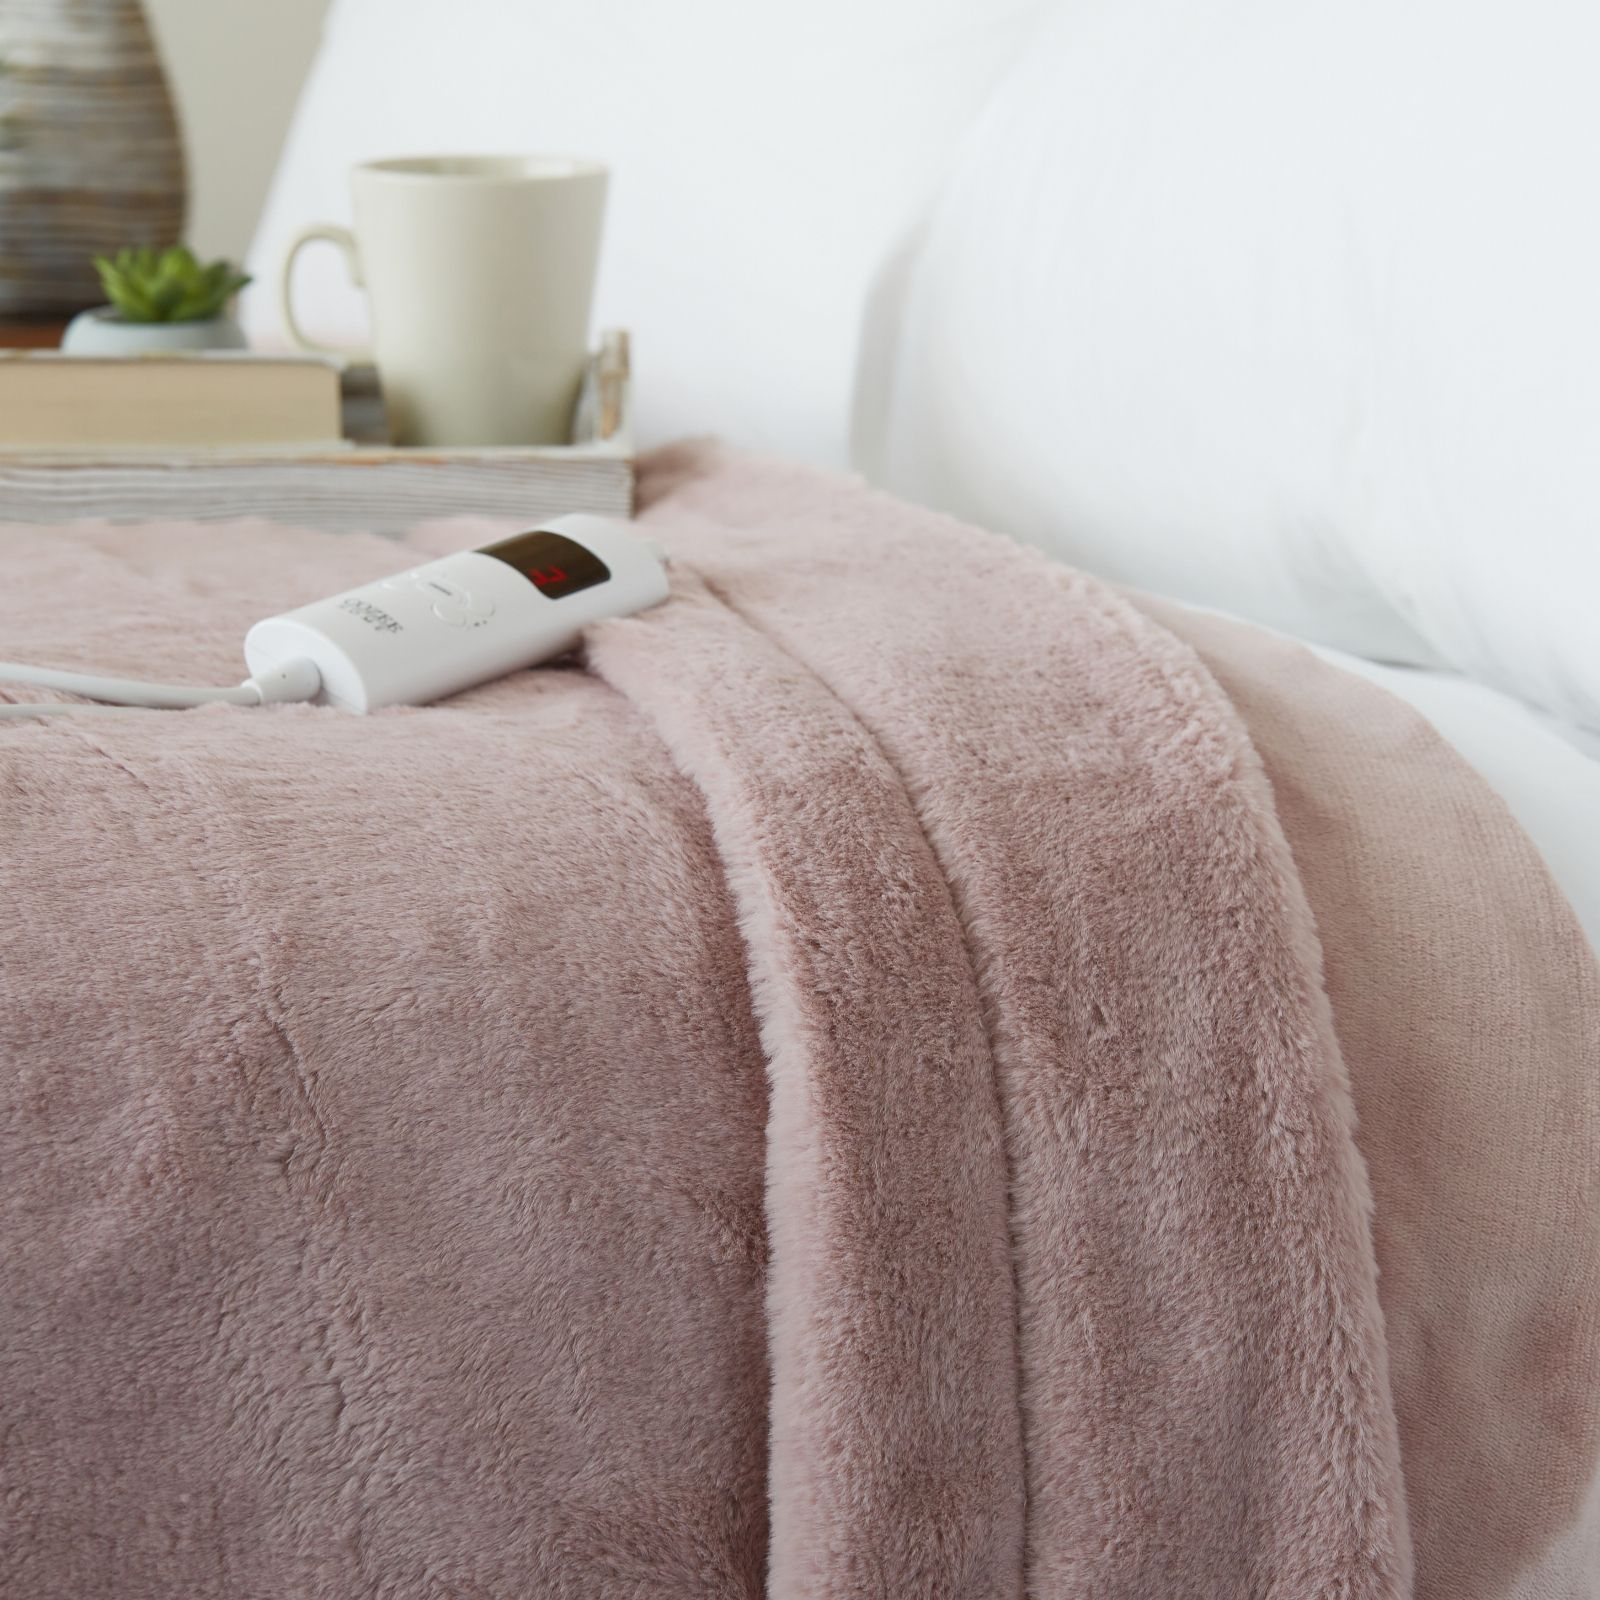 Cozee Home Luxury Faux Fur Heated Throw With 6 Heat Settings Qvc Uk